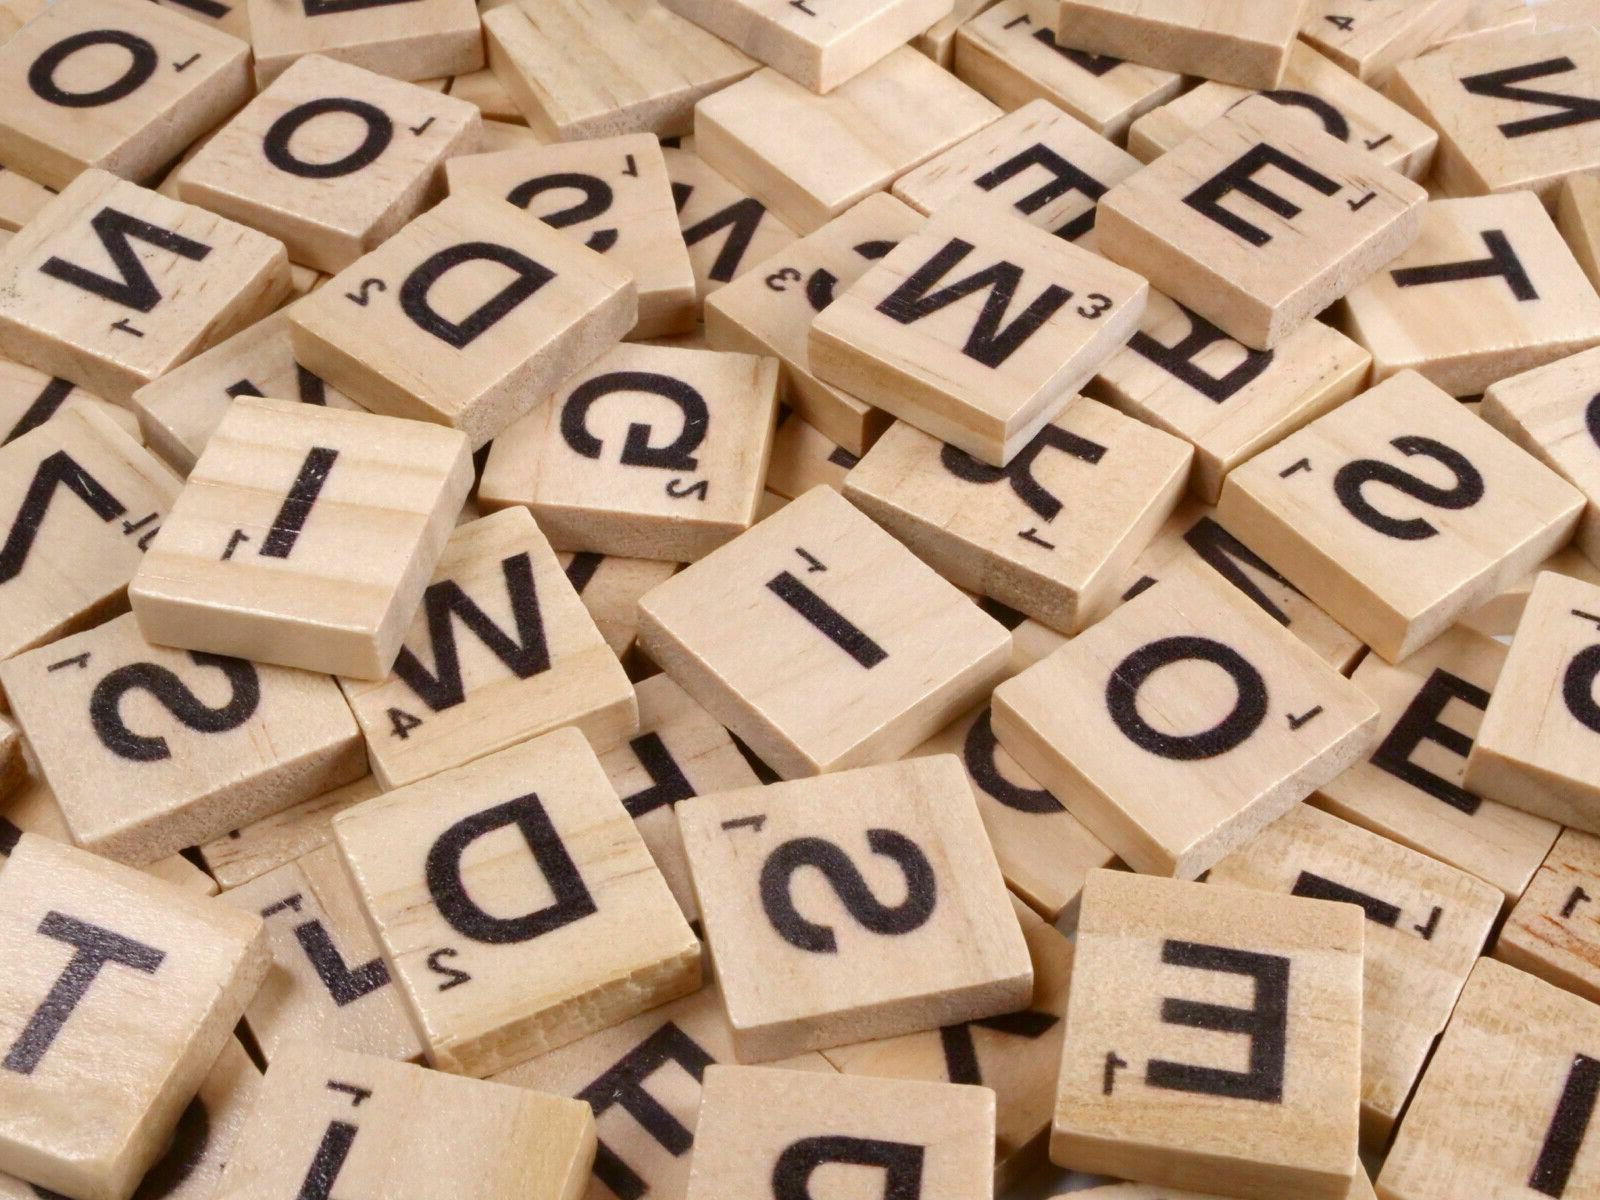 500pcs Letters Scrabble For Game Stock